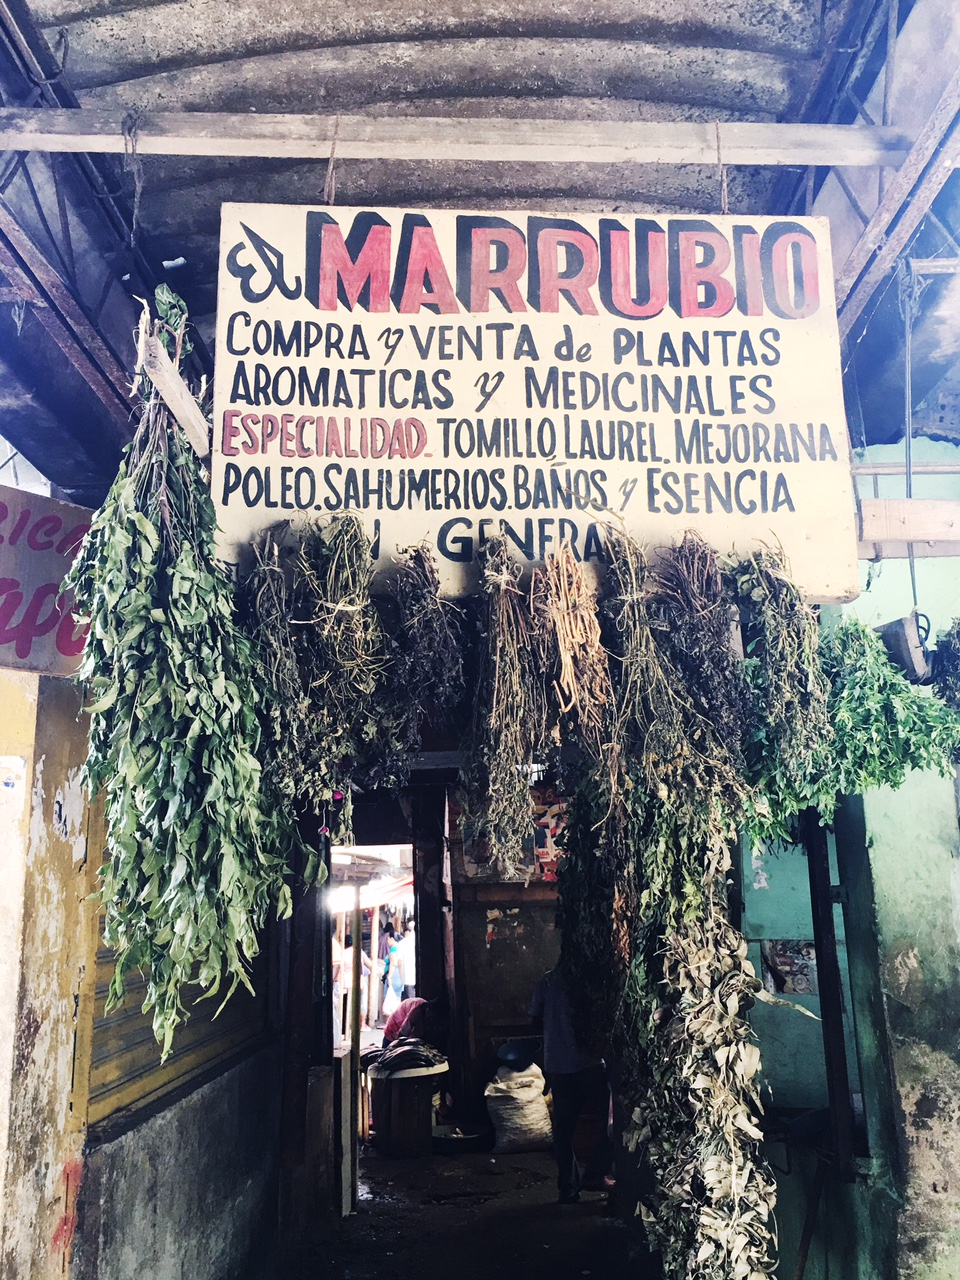 At the central market, dried healing botanicals.